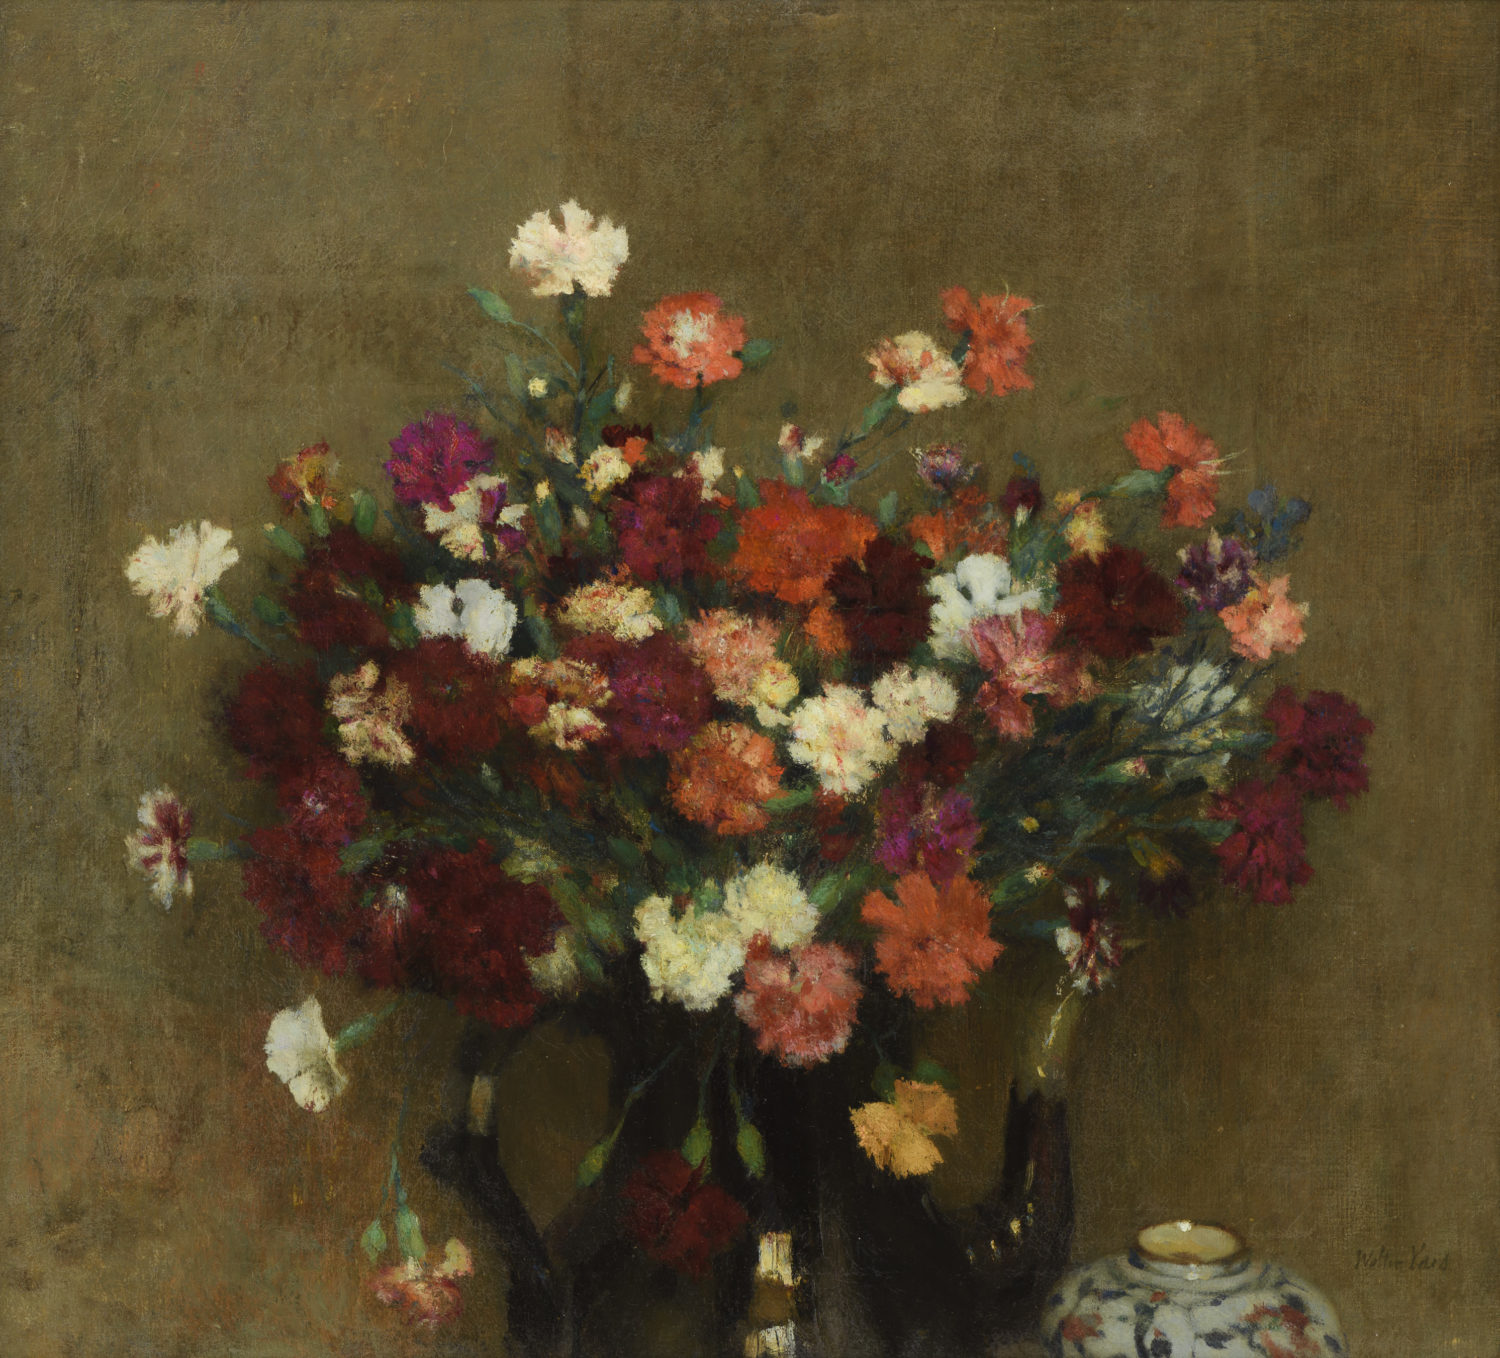 Walter Vaes | A still life with carnations in a teapot | Kunsthandel Bies | Bies Gallery